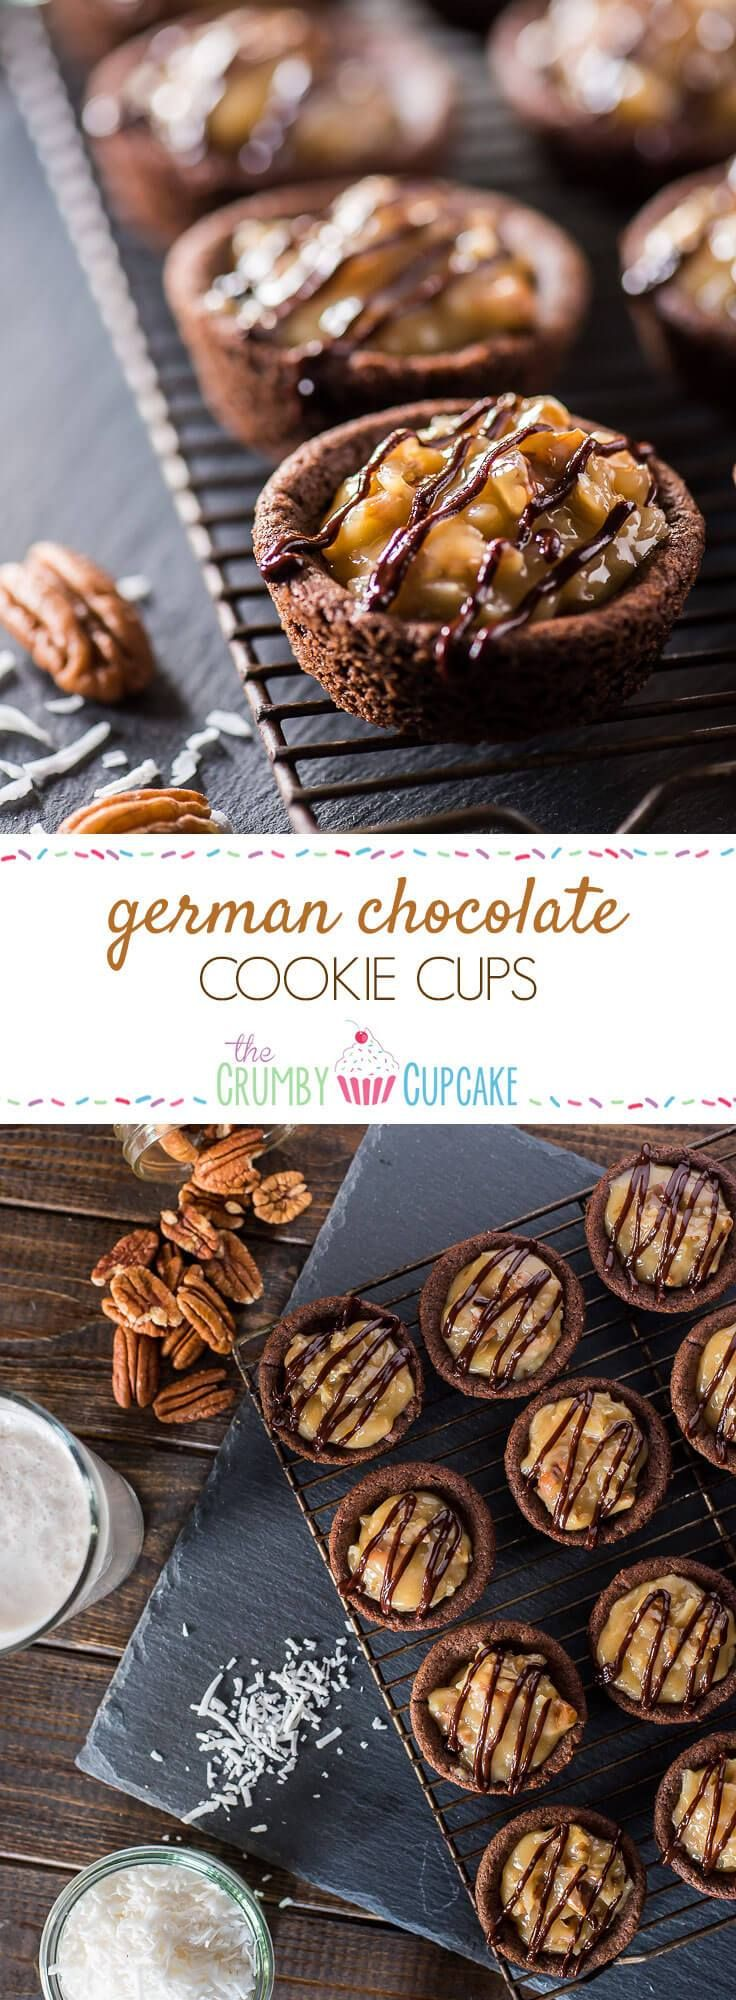 Cupcakes for cookie lovers! Ooey, gooey, and chewy, these German Chocolate Cookie Cups are the perfect treat to include in any holiday celebration!